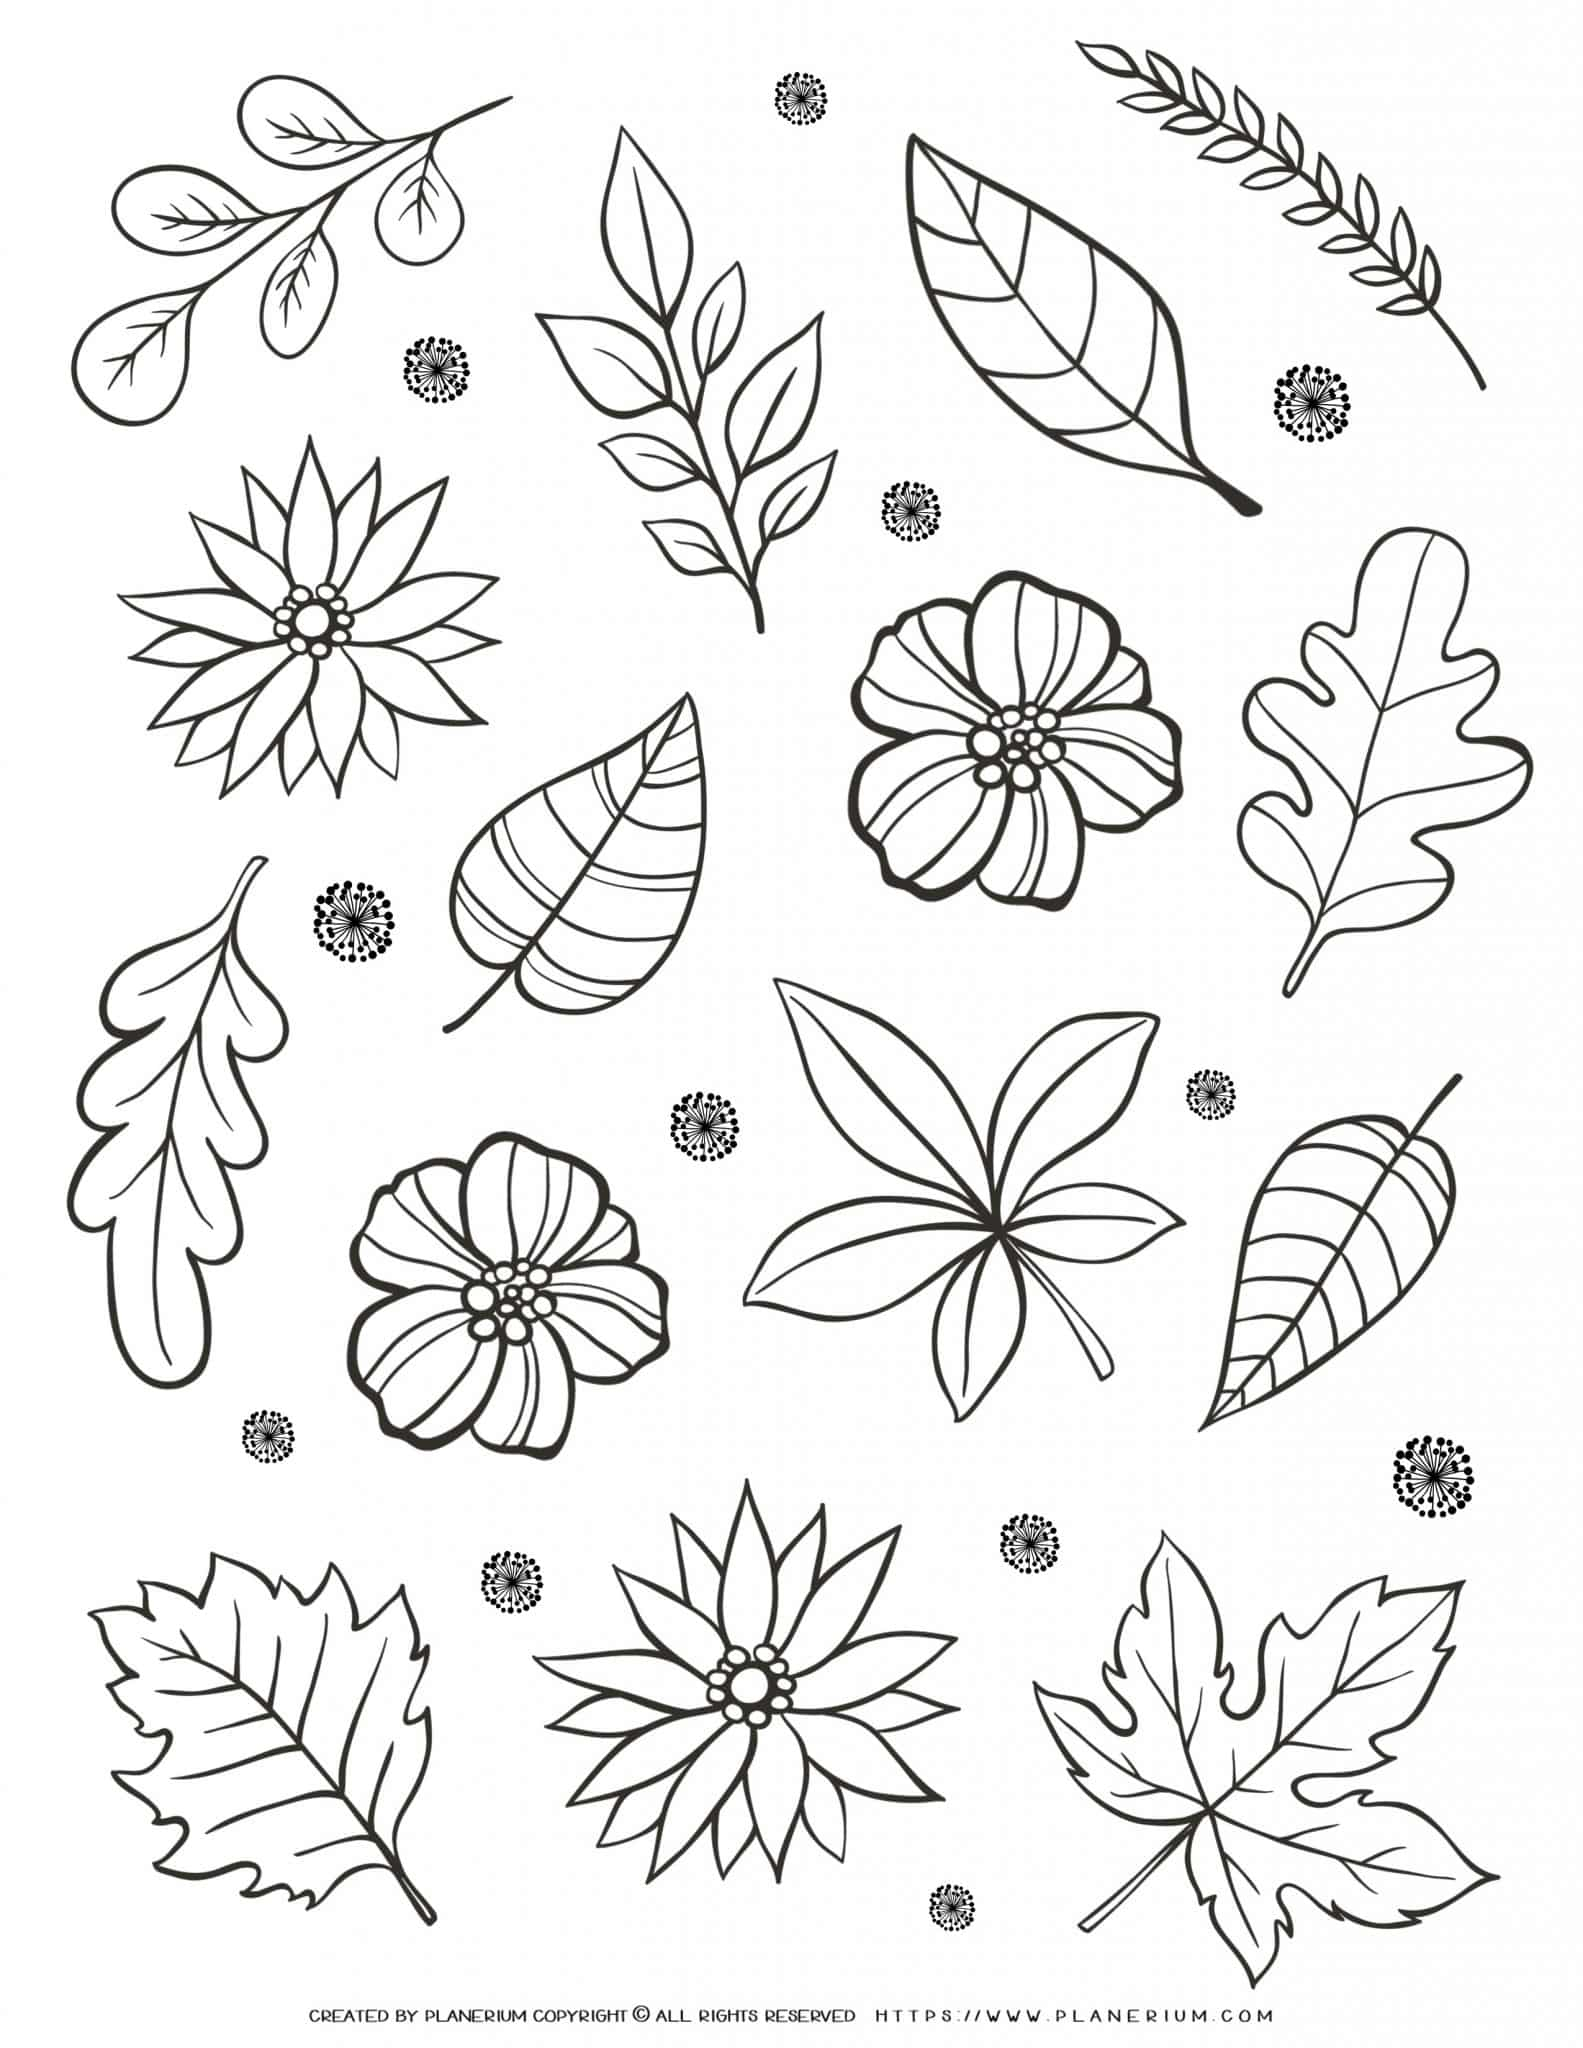 Adult Coloring Page - Flowers And Leaves   Planerium